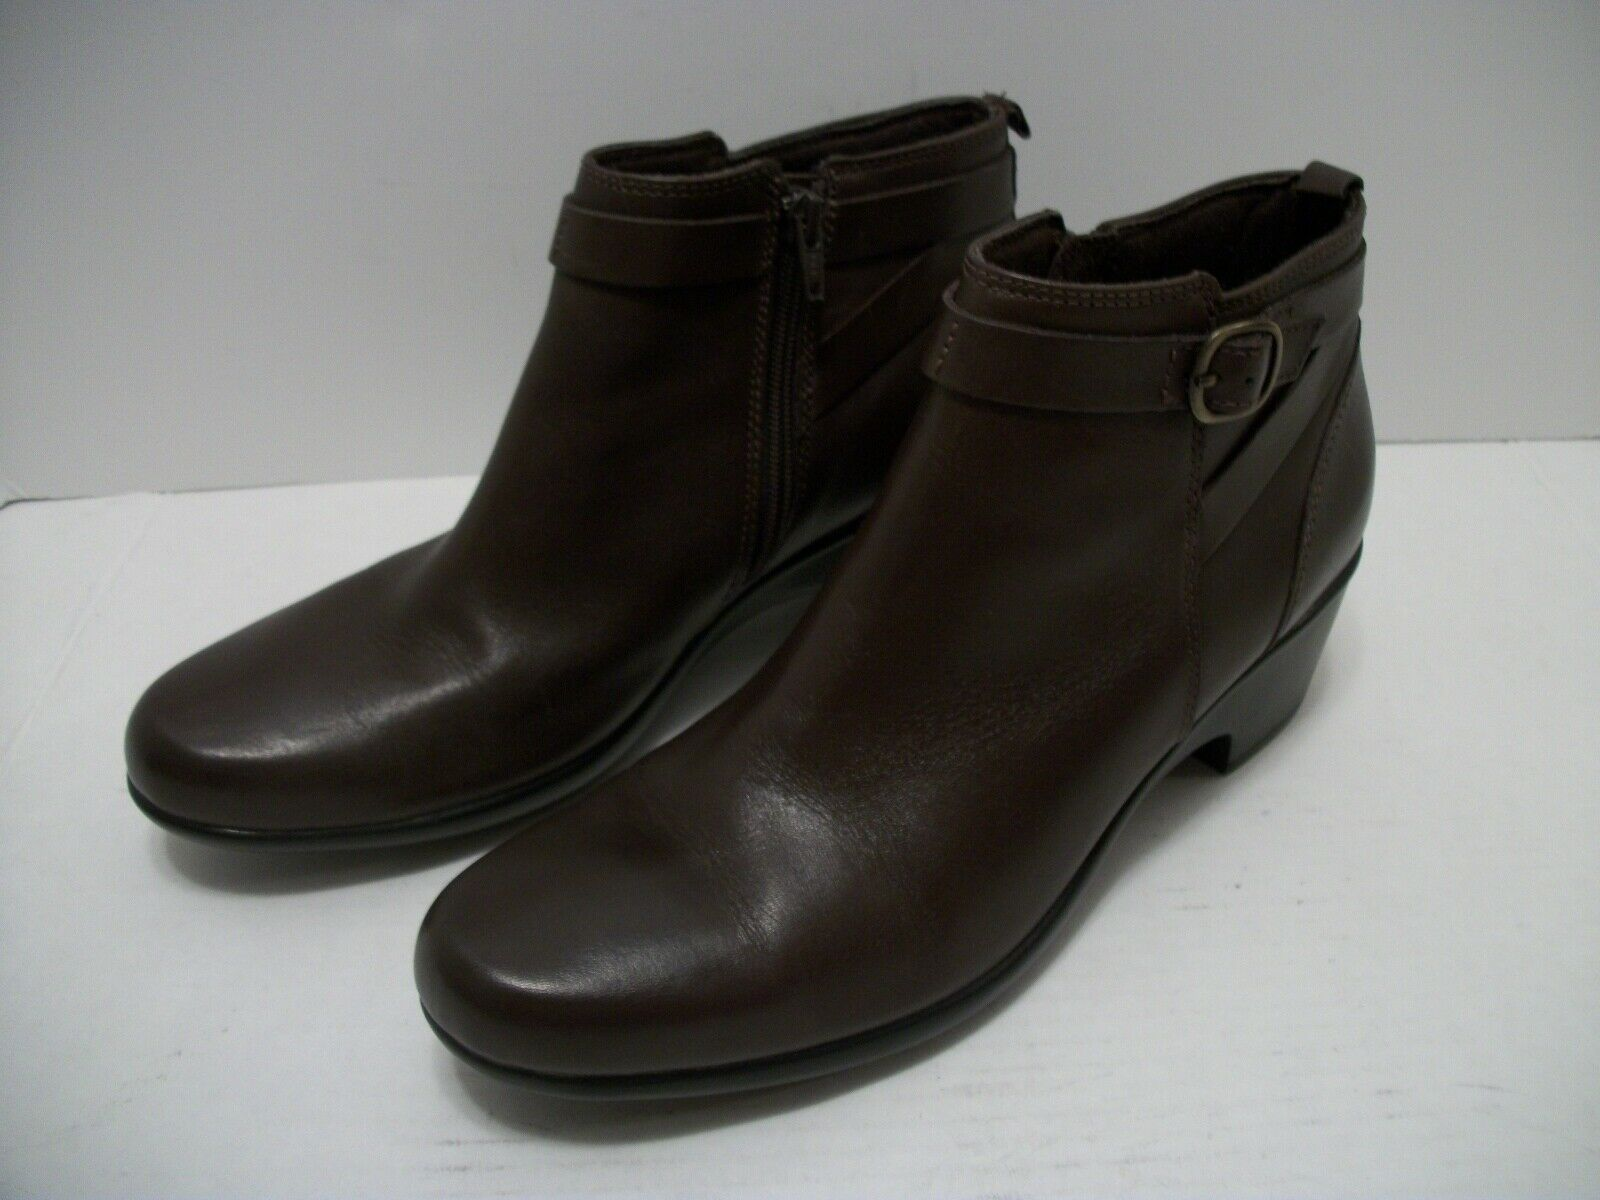 Women's Clarks Collection Chocolate Brown Leather Zip Ankle Boots US Size 11N